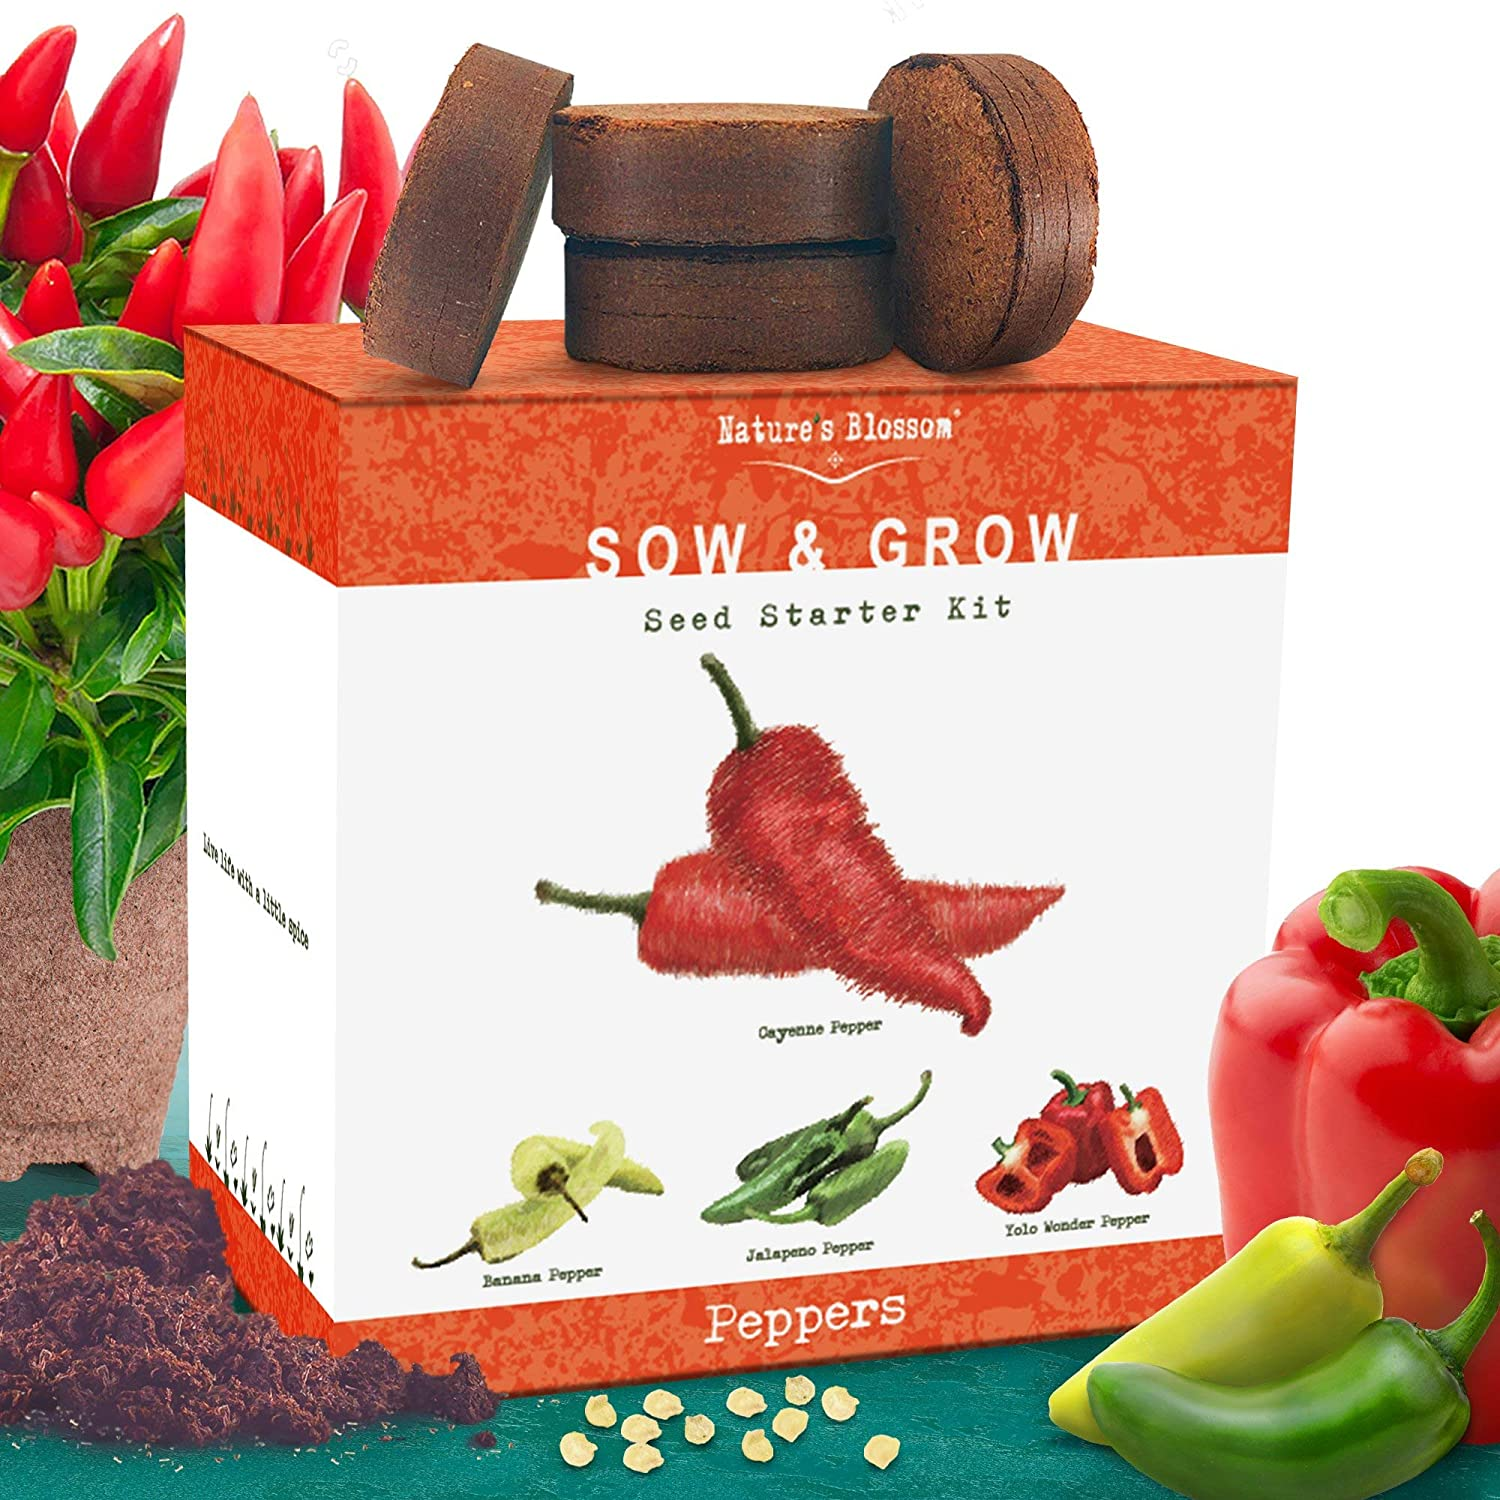 Nature's Blossom Indoor Peppers Seed Starter Kit - Grow 4 Different Peppers